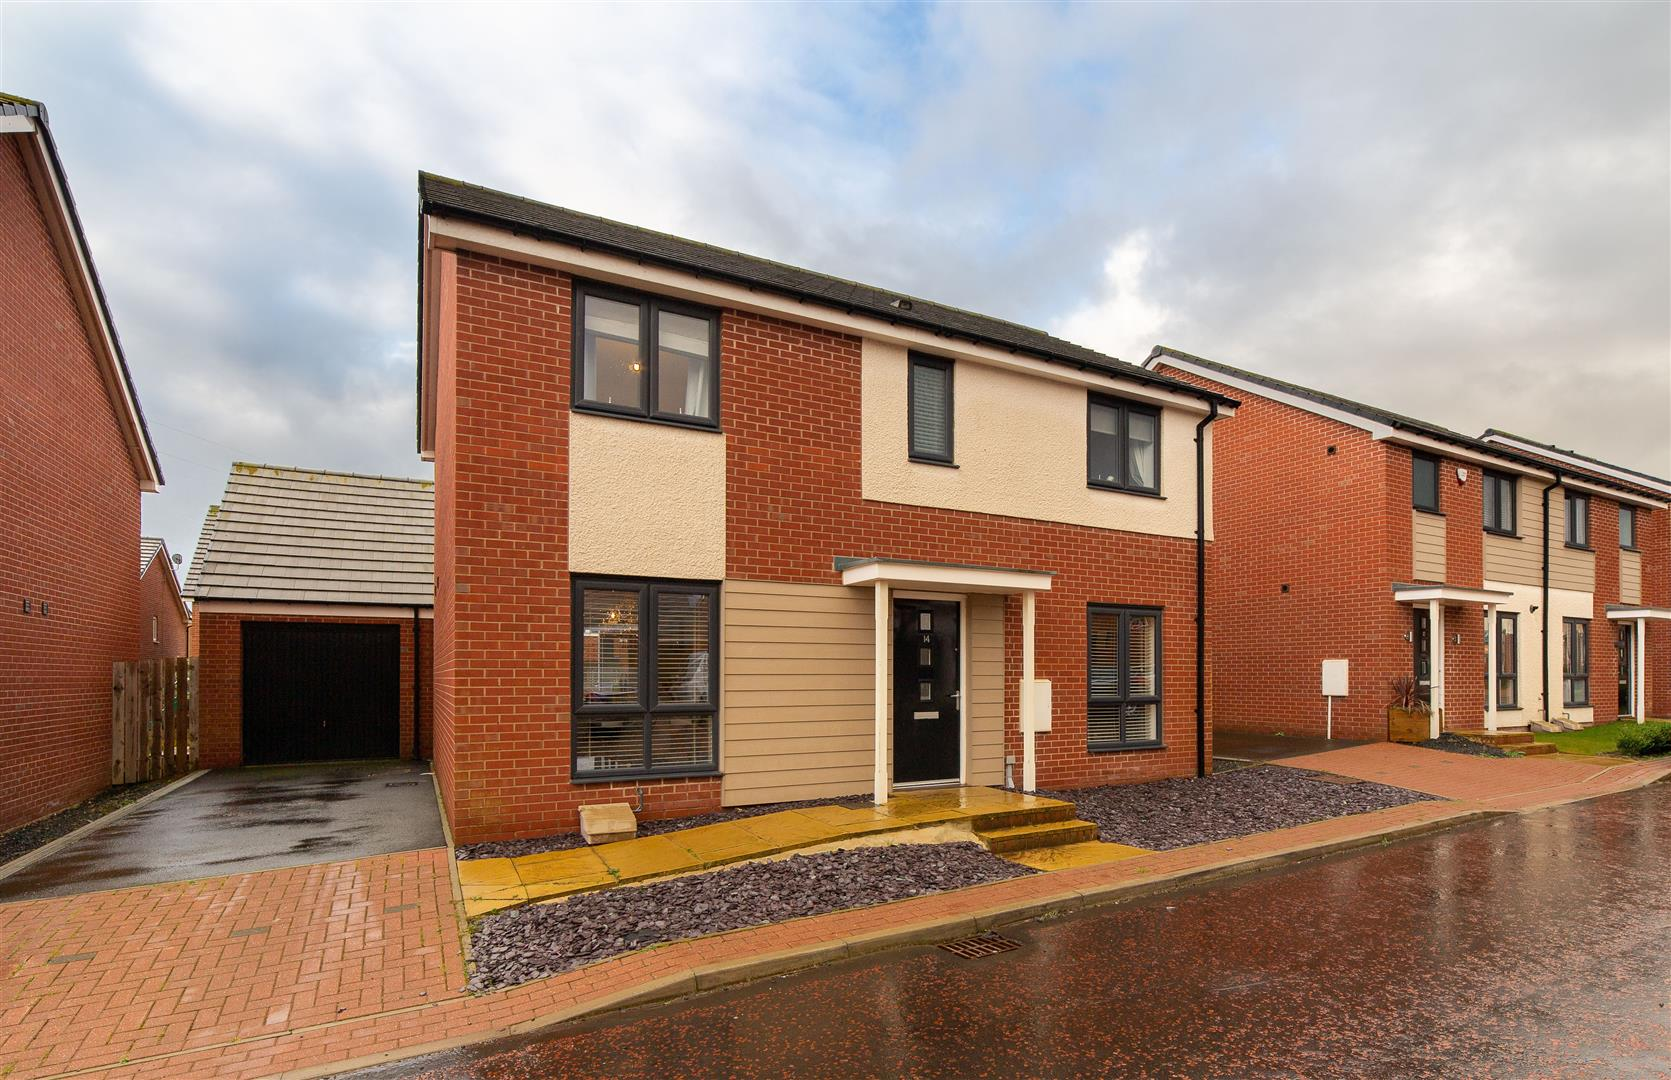 4 bed detached house for sale in Newcastle Upon Tyne, NE13 9DD  - Property Image 1